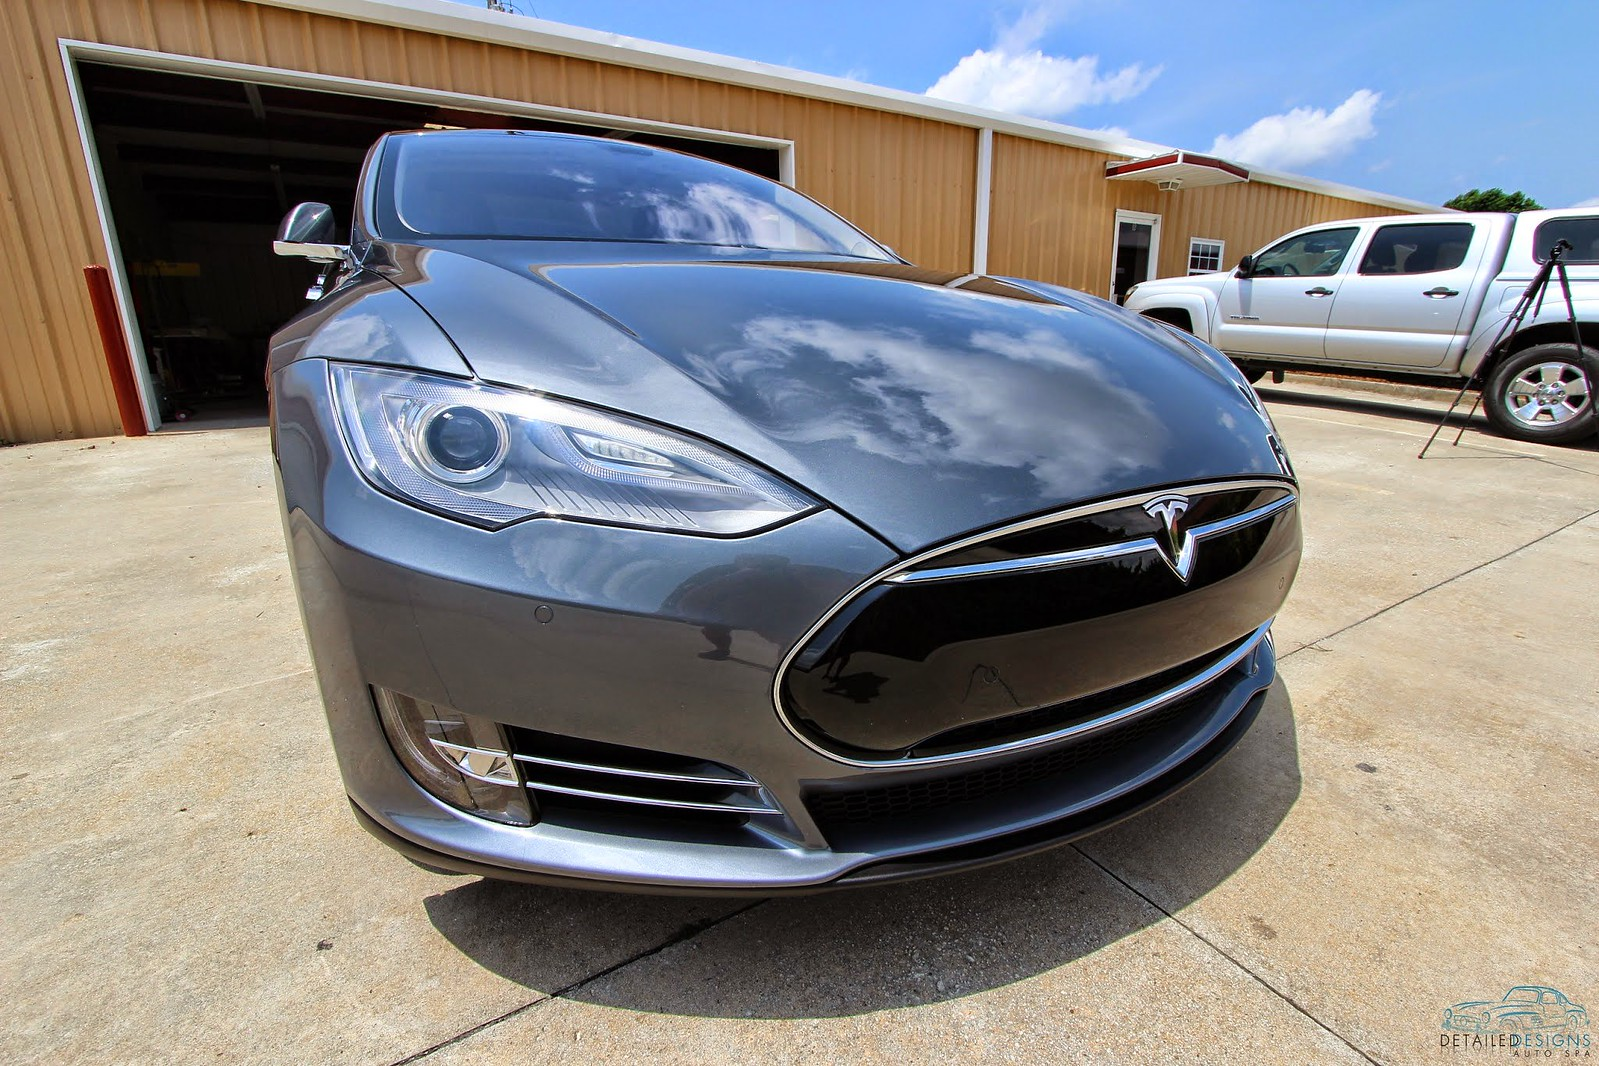 Tesla Model S Clear Bra Modesta BC-04 Atlanta Detailed Designs Auto Spa